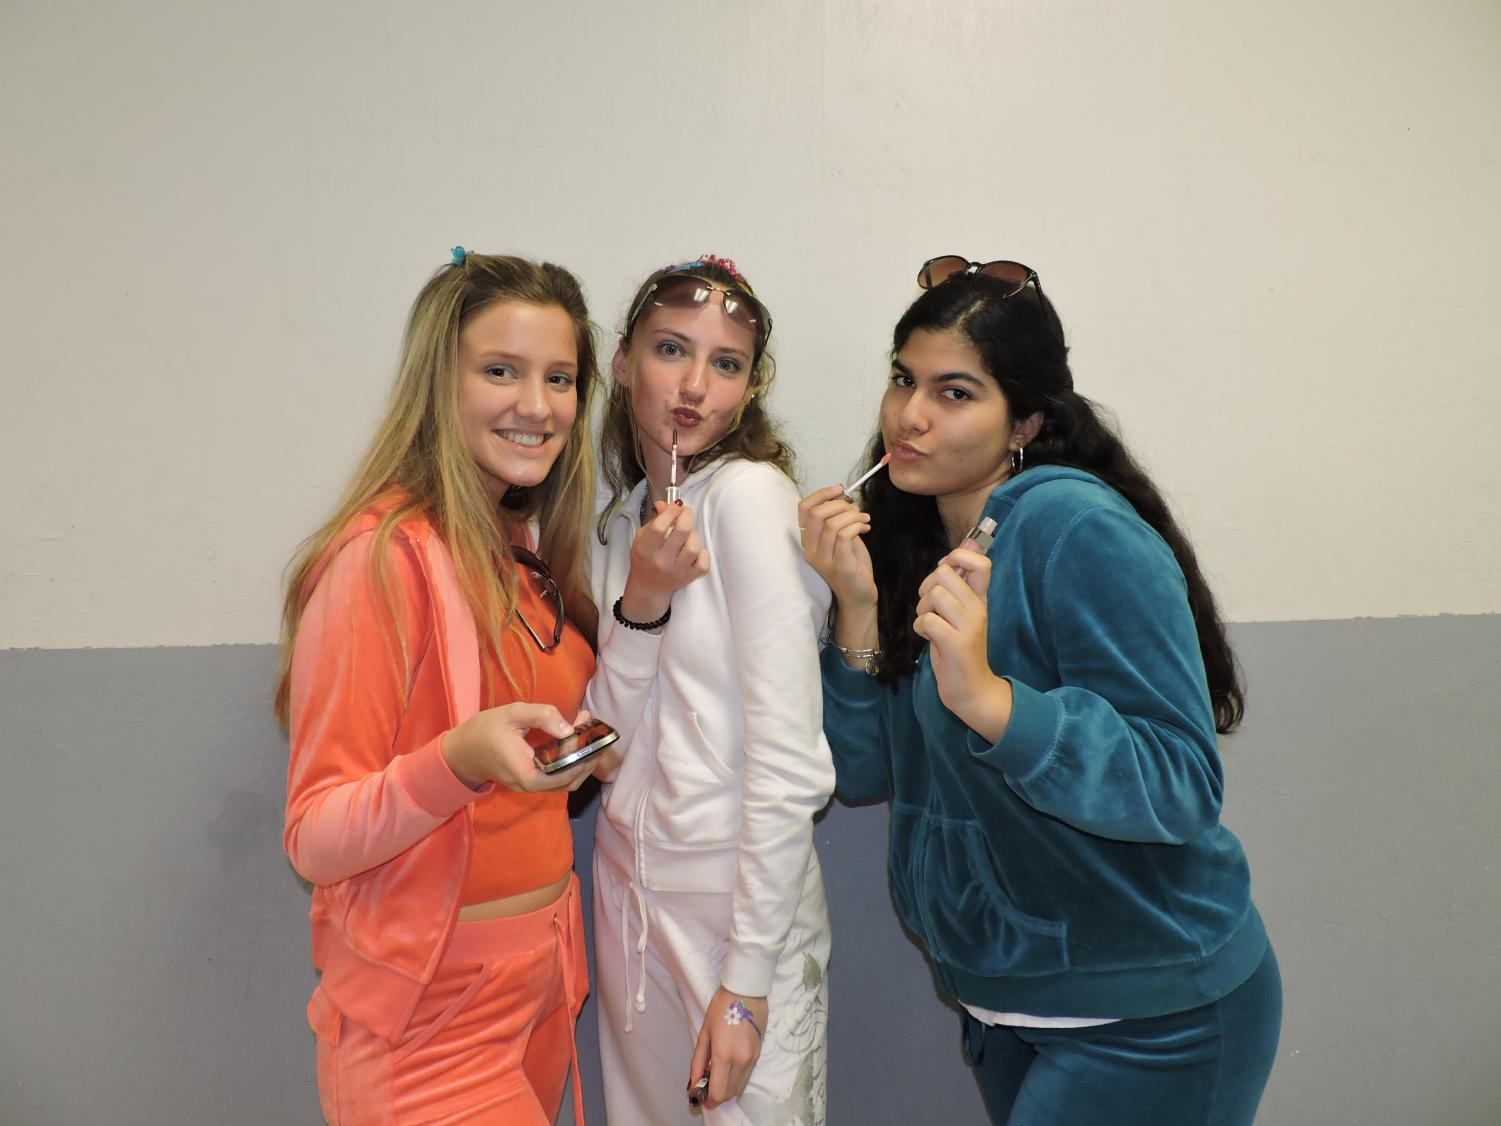 Students pose in their Blast from the Past outfits,